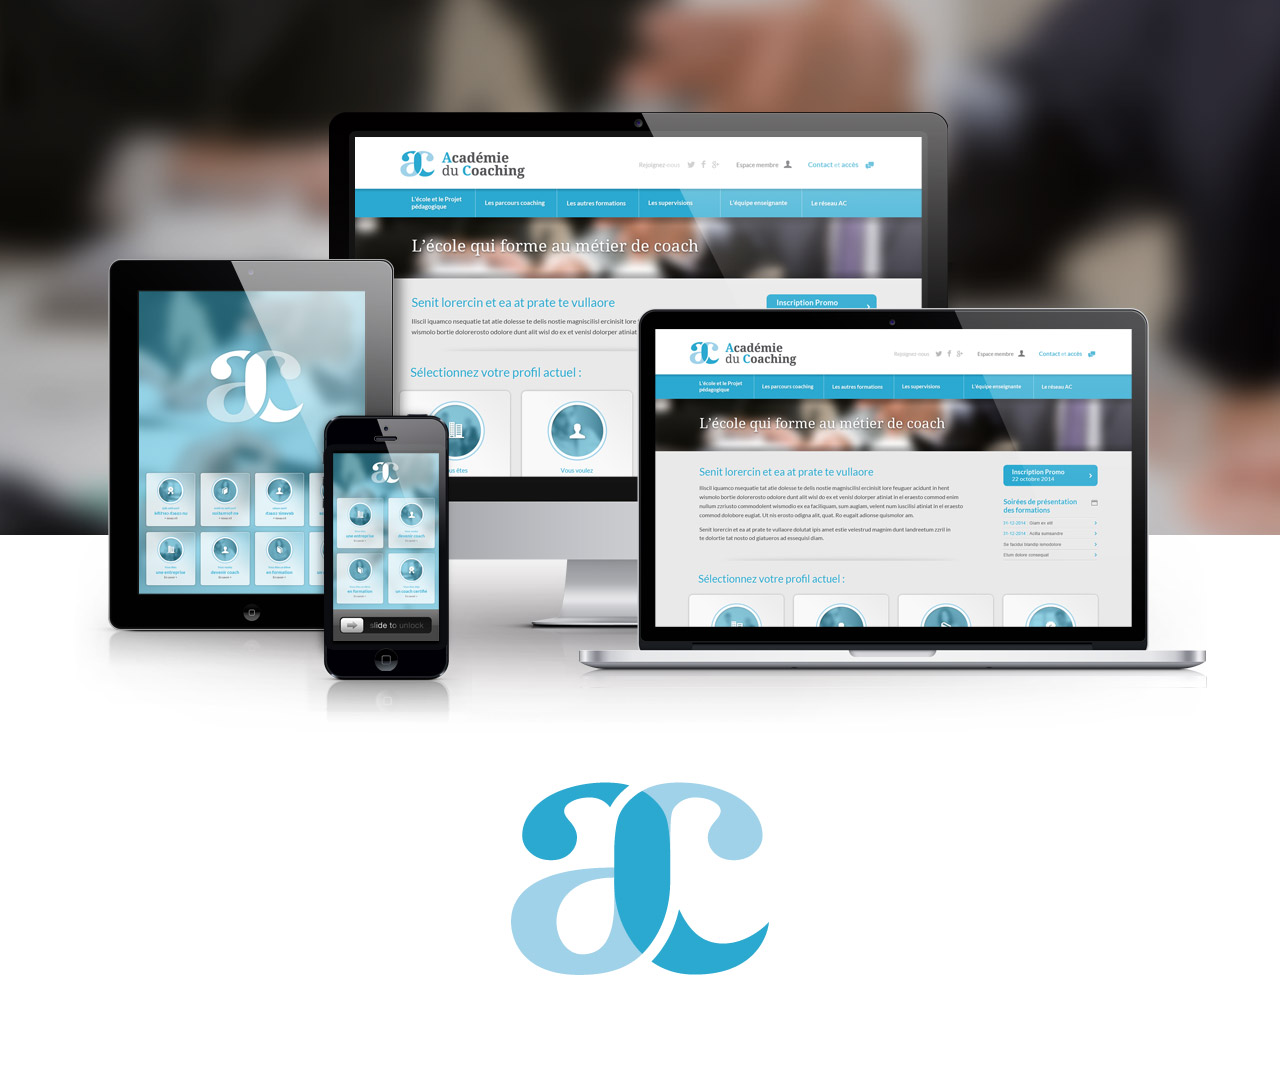 academie-du-coaching-site-internet-responsive-design-creation-communication-caconcept-alexis-cretin-graphiste